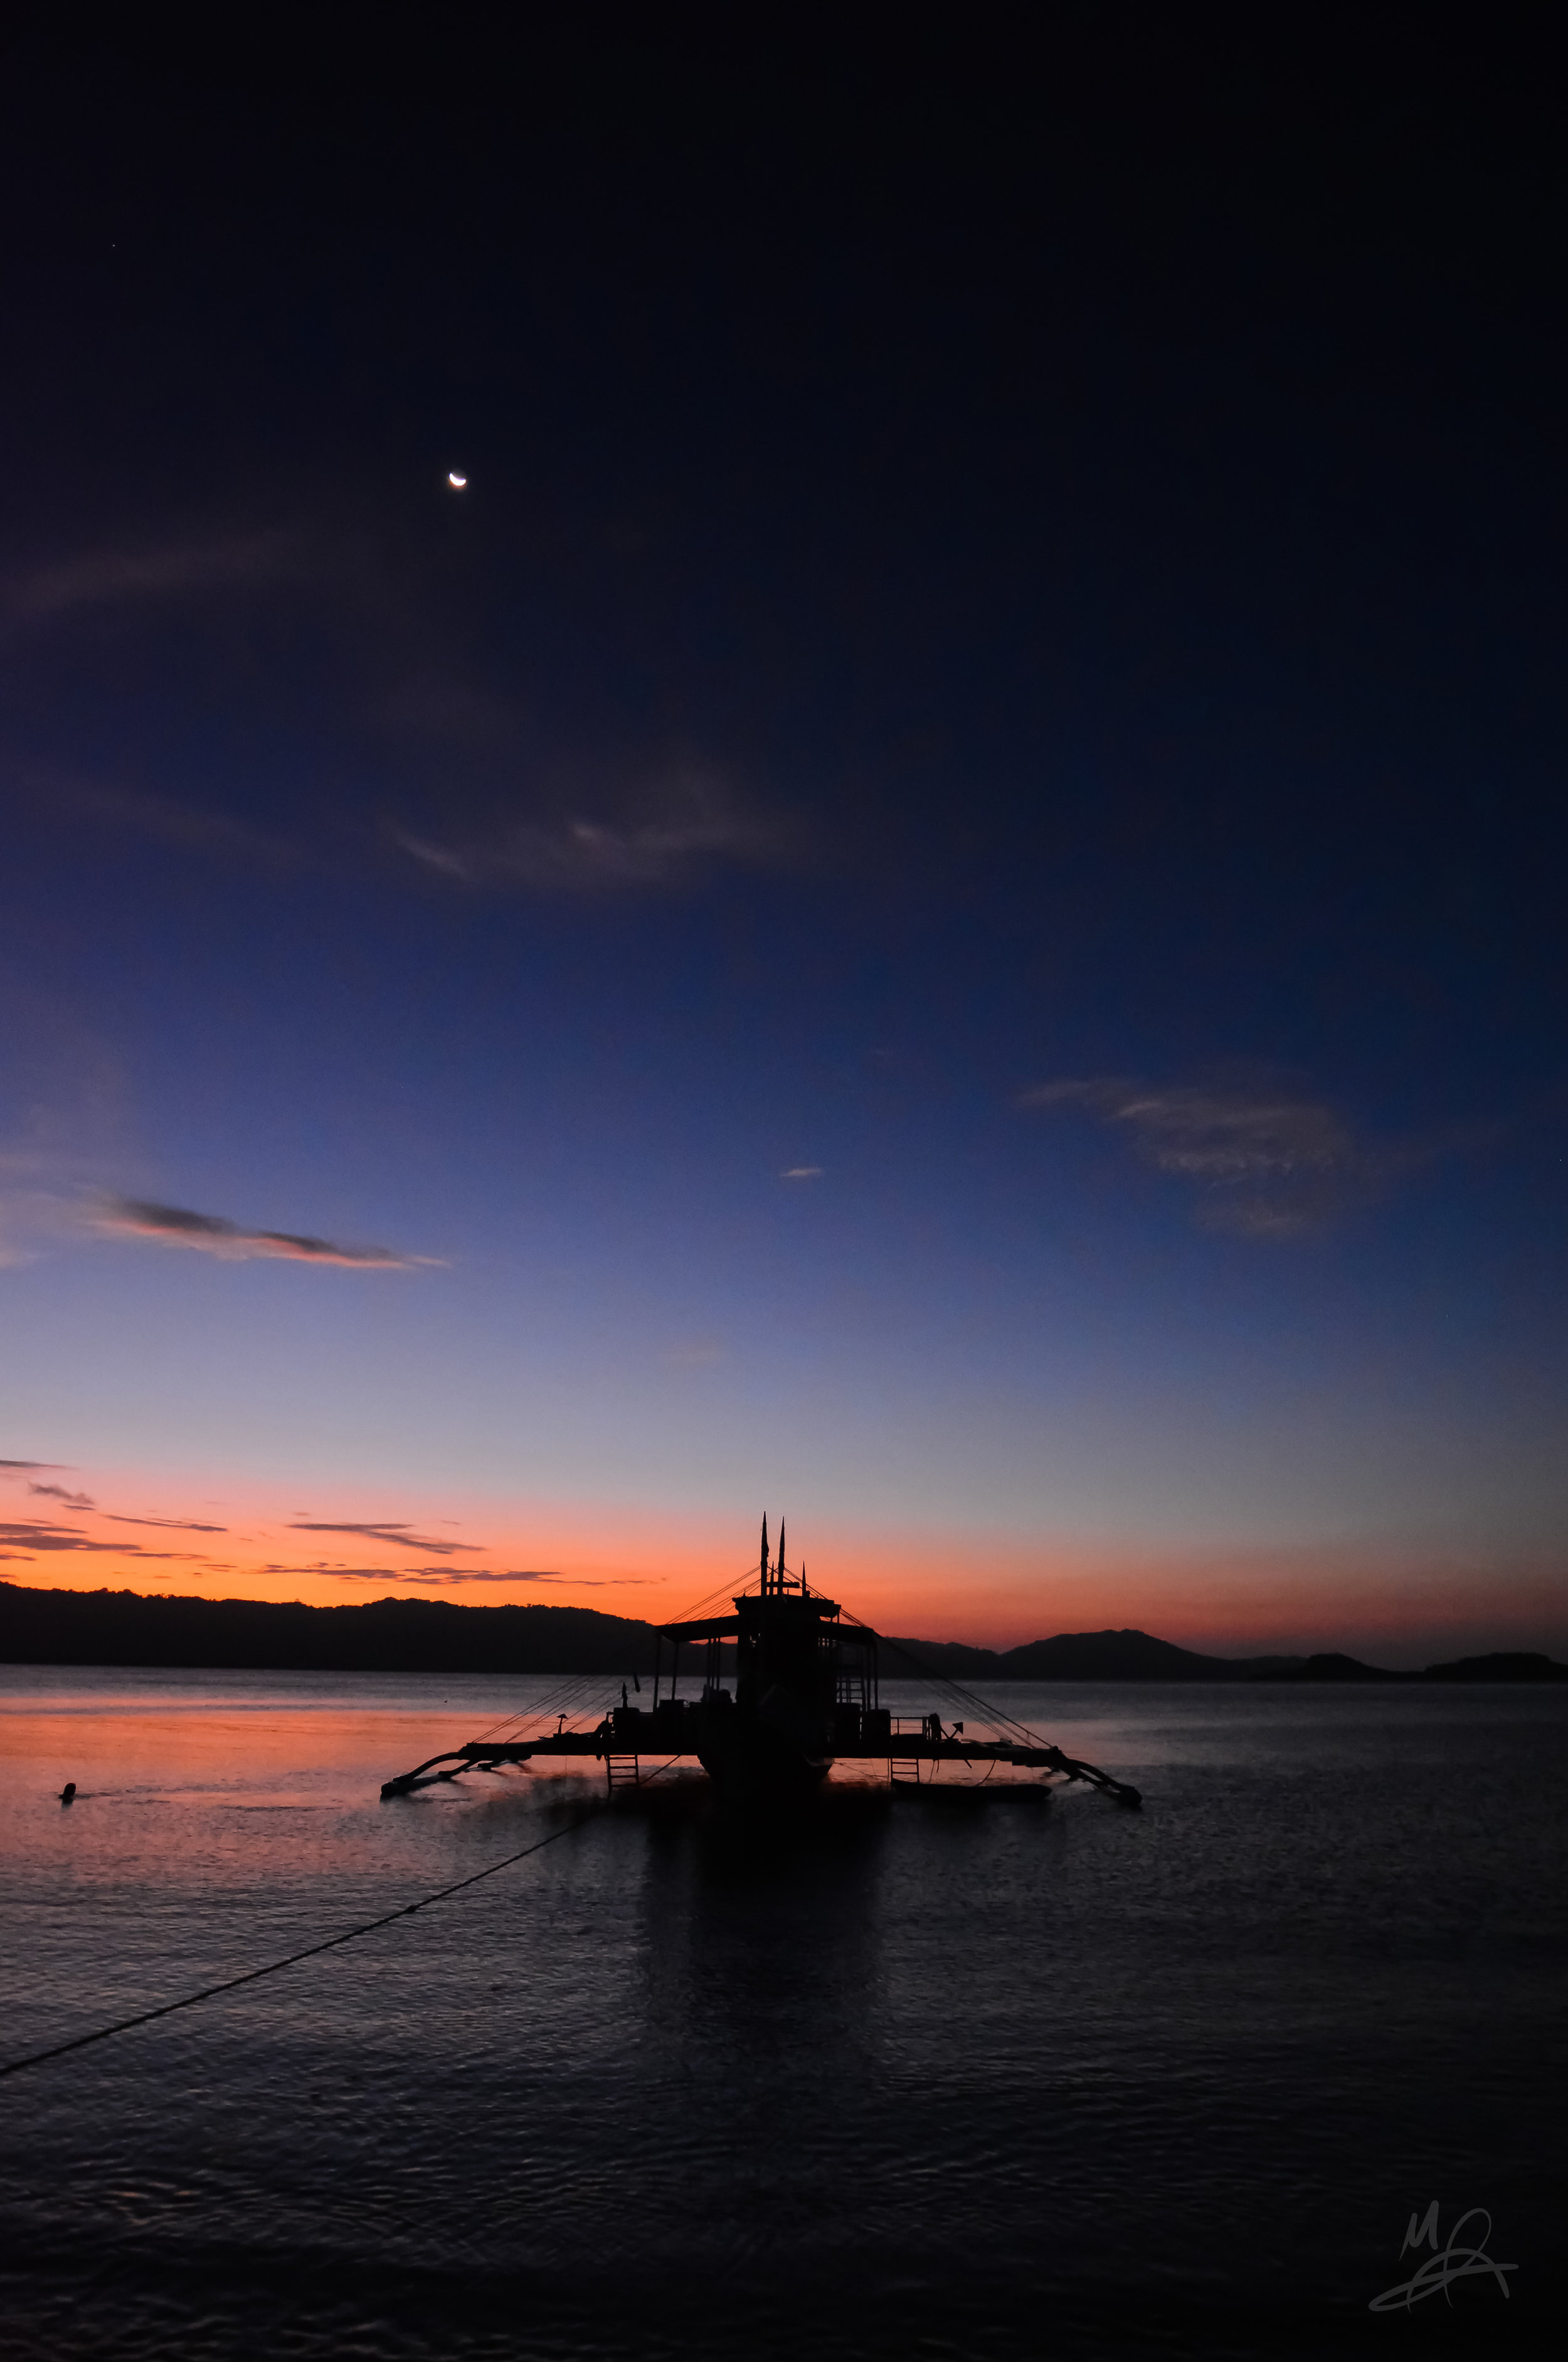 Vessel accompanied by the moon at sunset